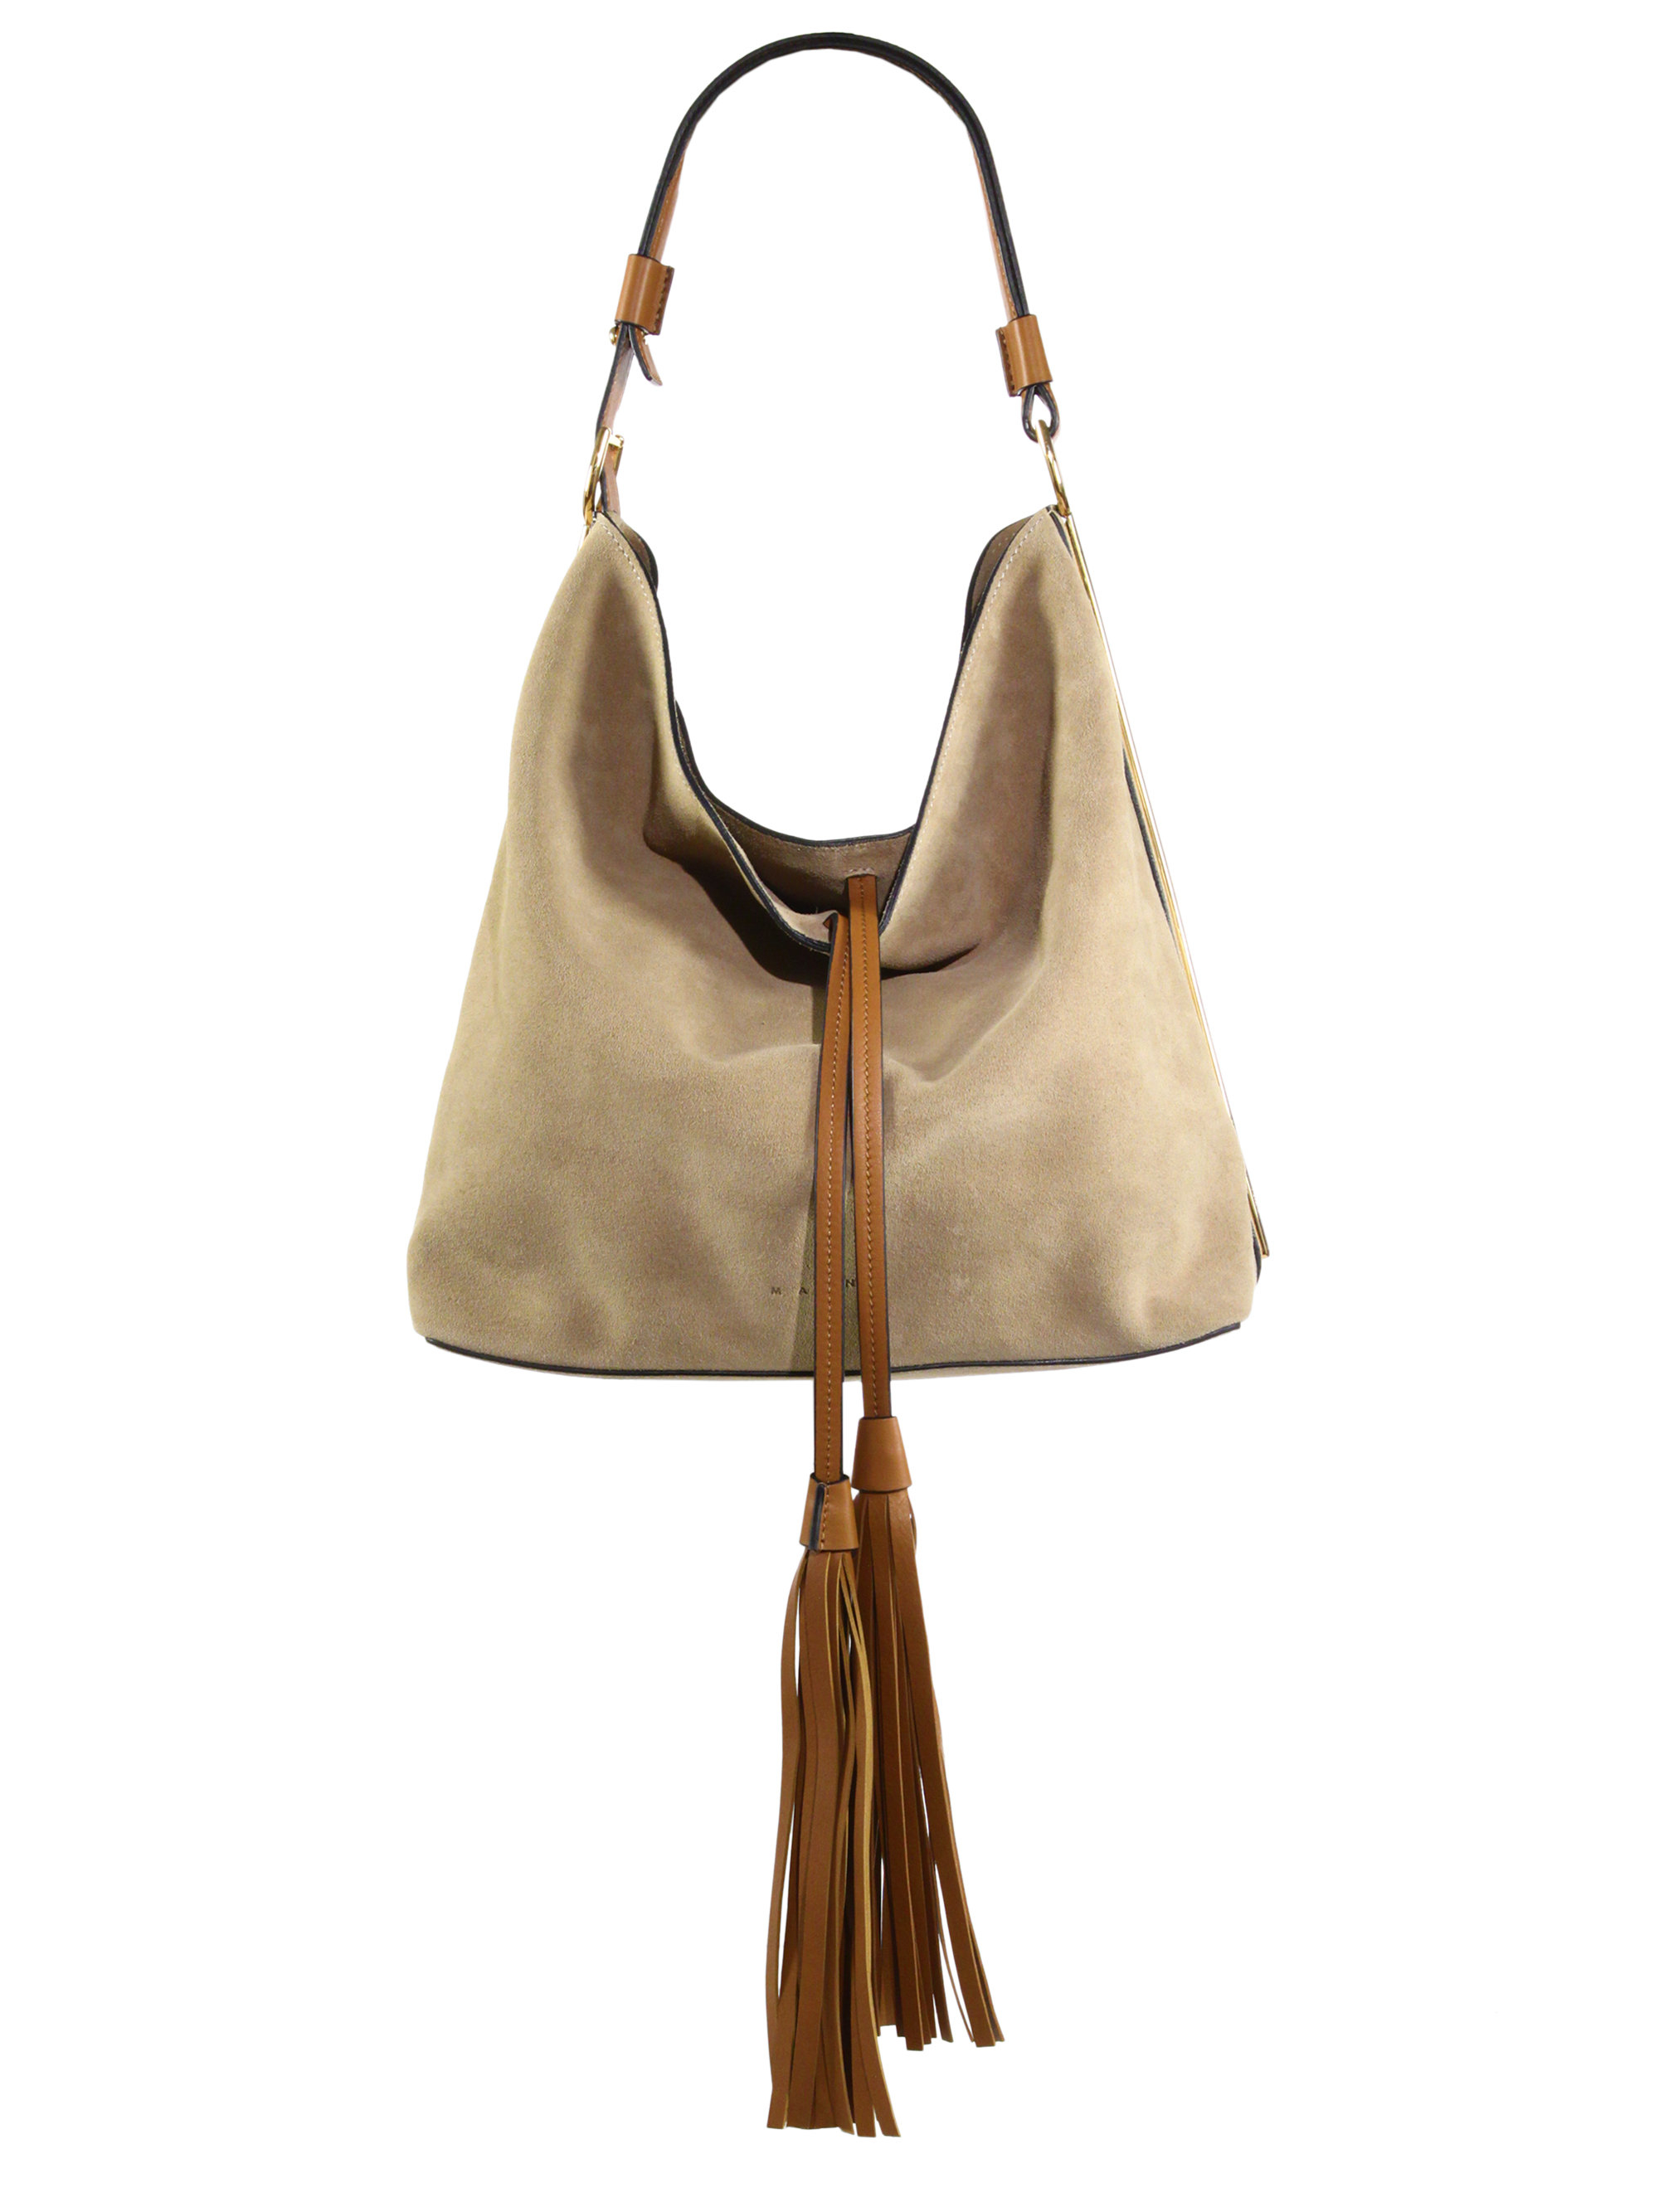 Marni Suede Hobo Bag With Tassels in Natural | Lyst